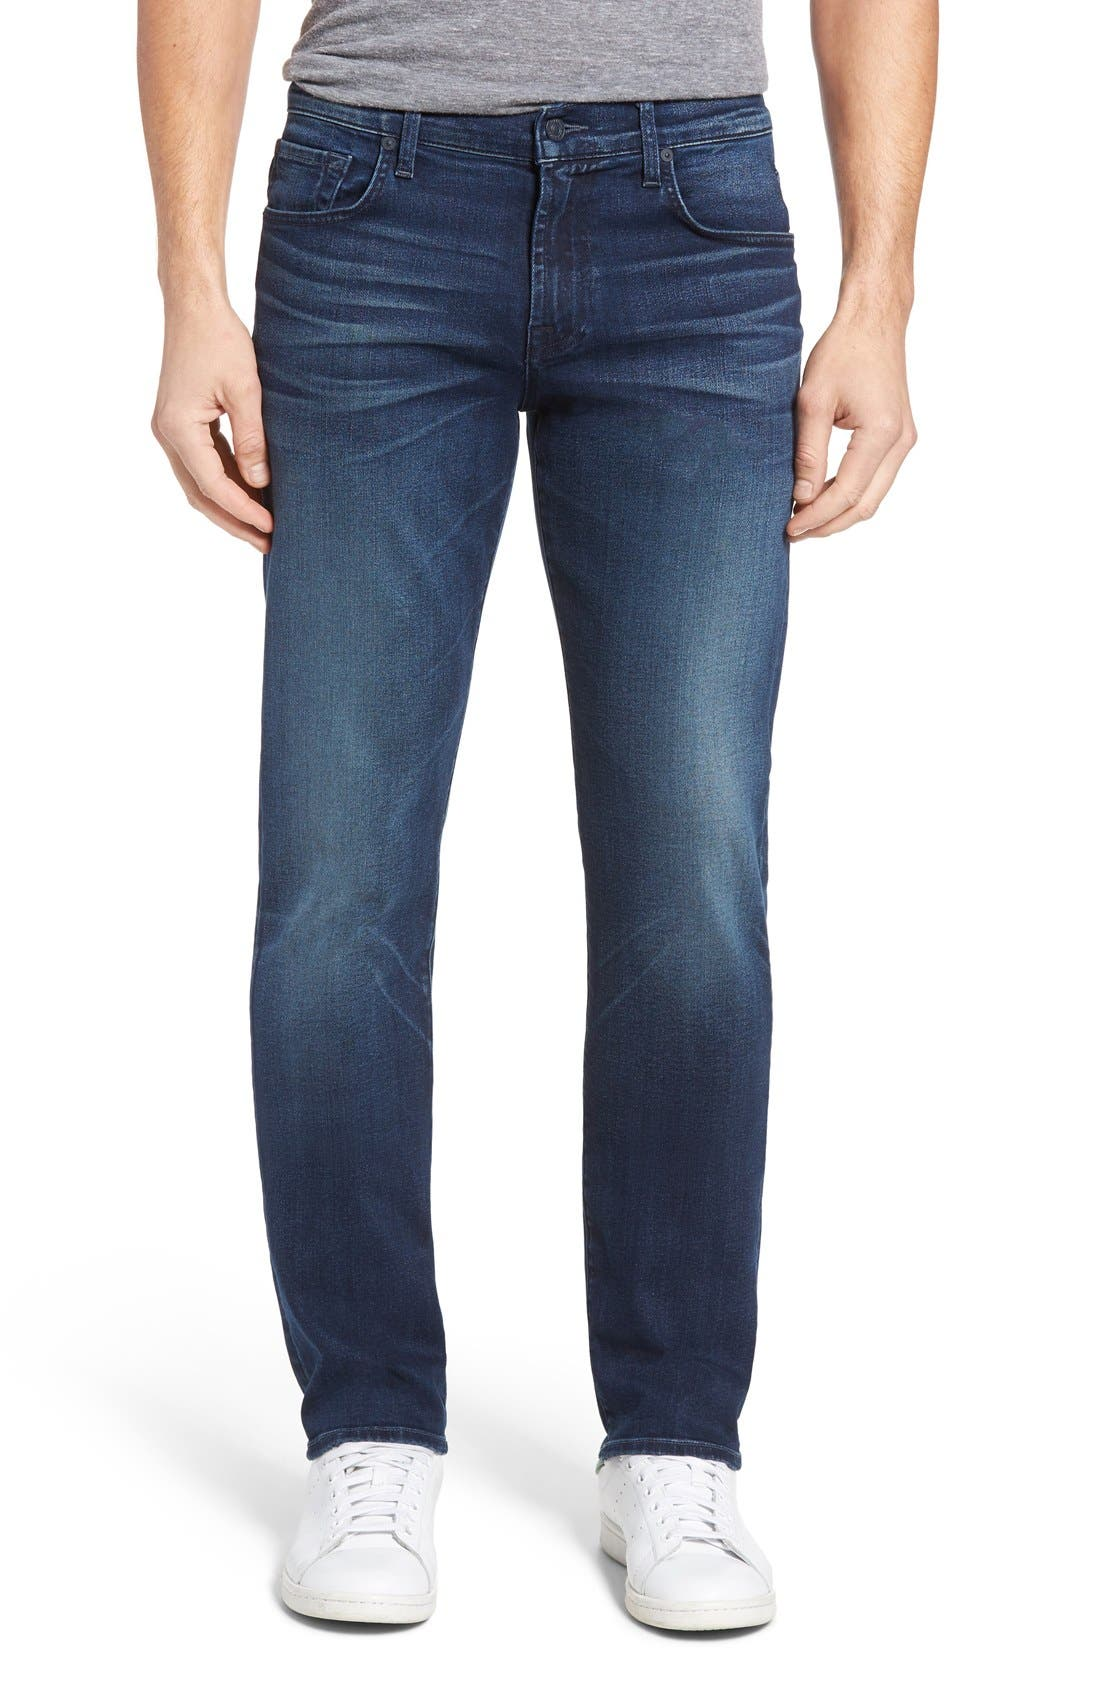 Slimmy Luxe Performance Slim Fit Jeans,                             Main thumbnail 1, color,                             402